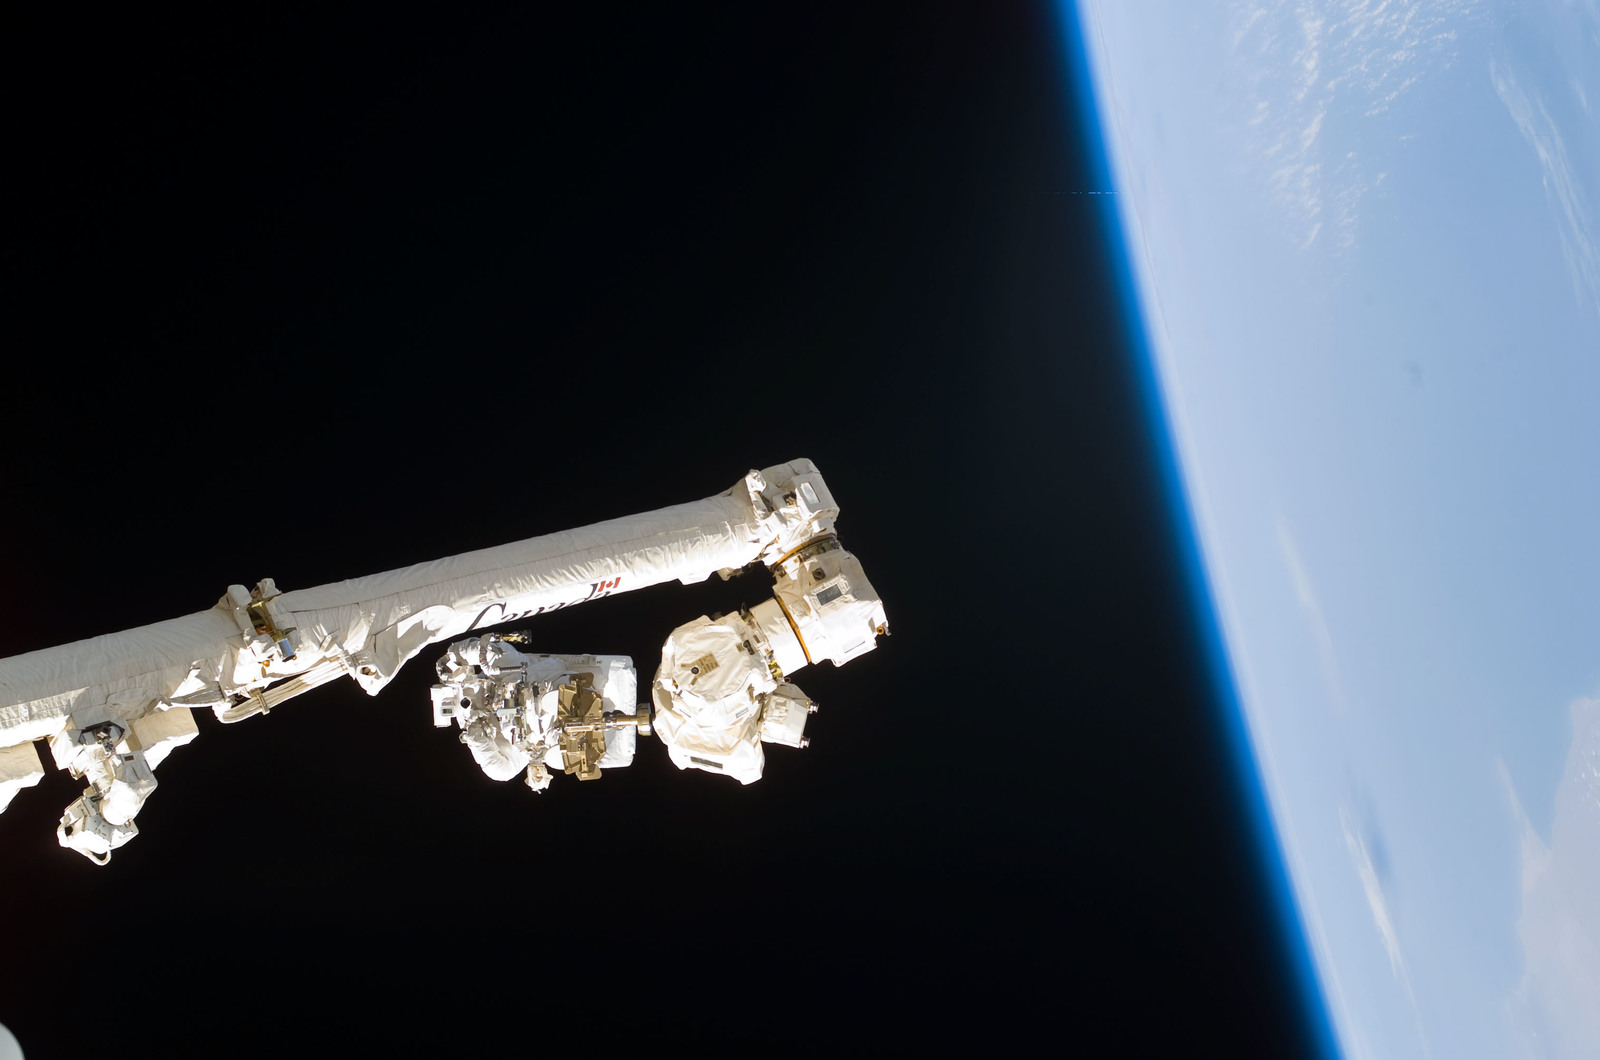 S114E6265 - STS-114 - Robinson on SSRMS Canadarm2 during EVA 3